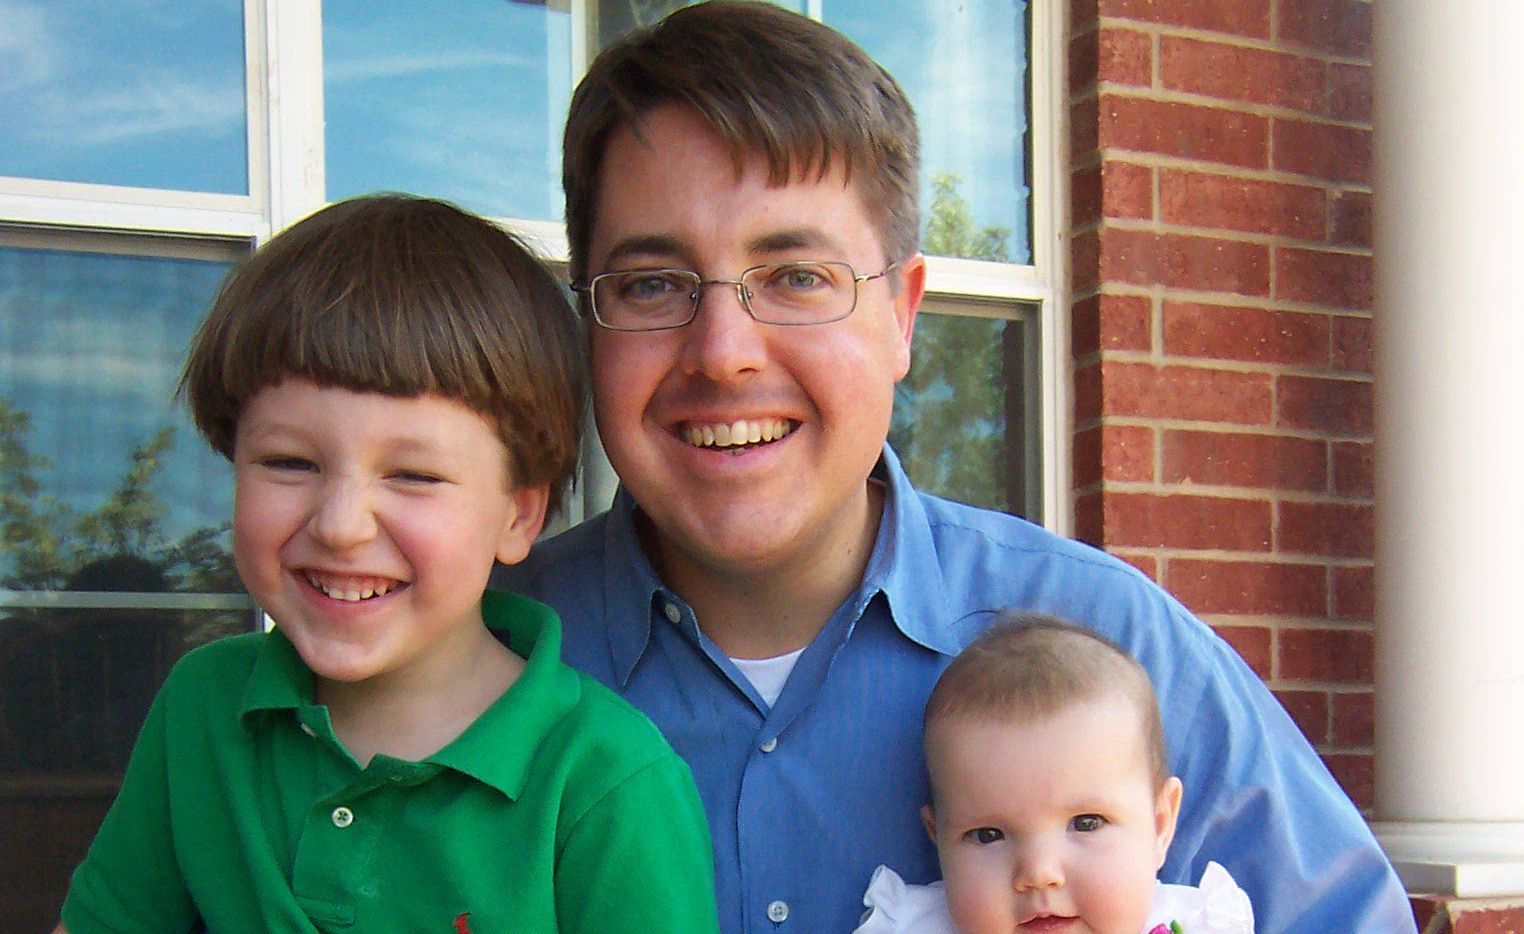 Steve Damm is pictured with his and Tyra's kids, Cooper and Katie, in 2005. Steve died 10 years ago.